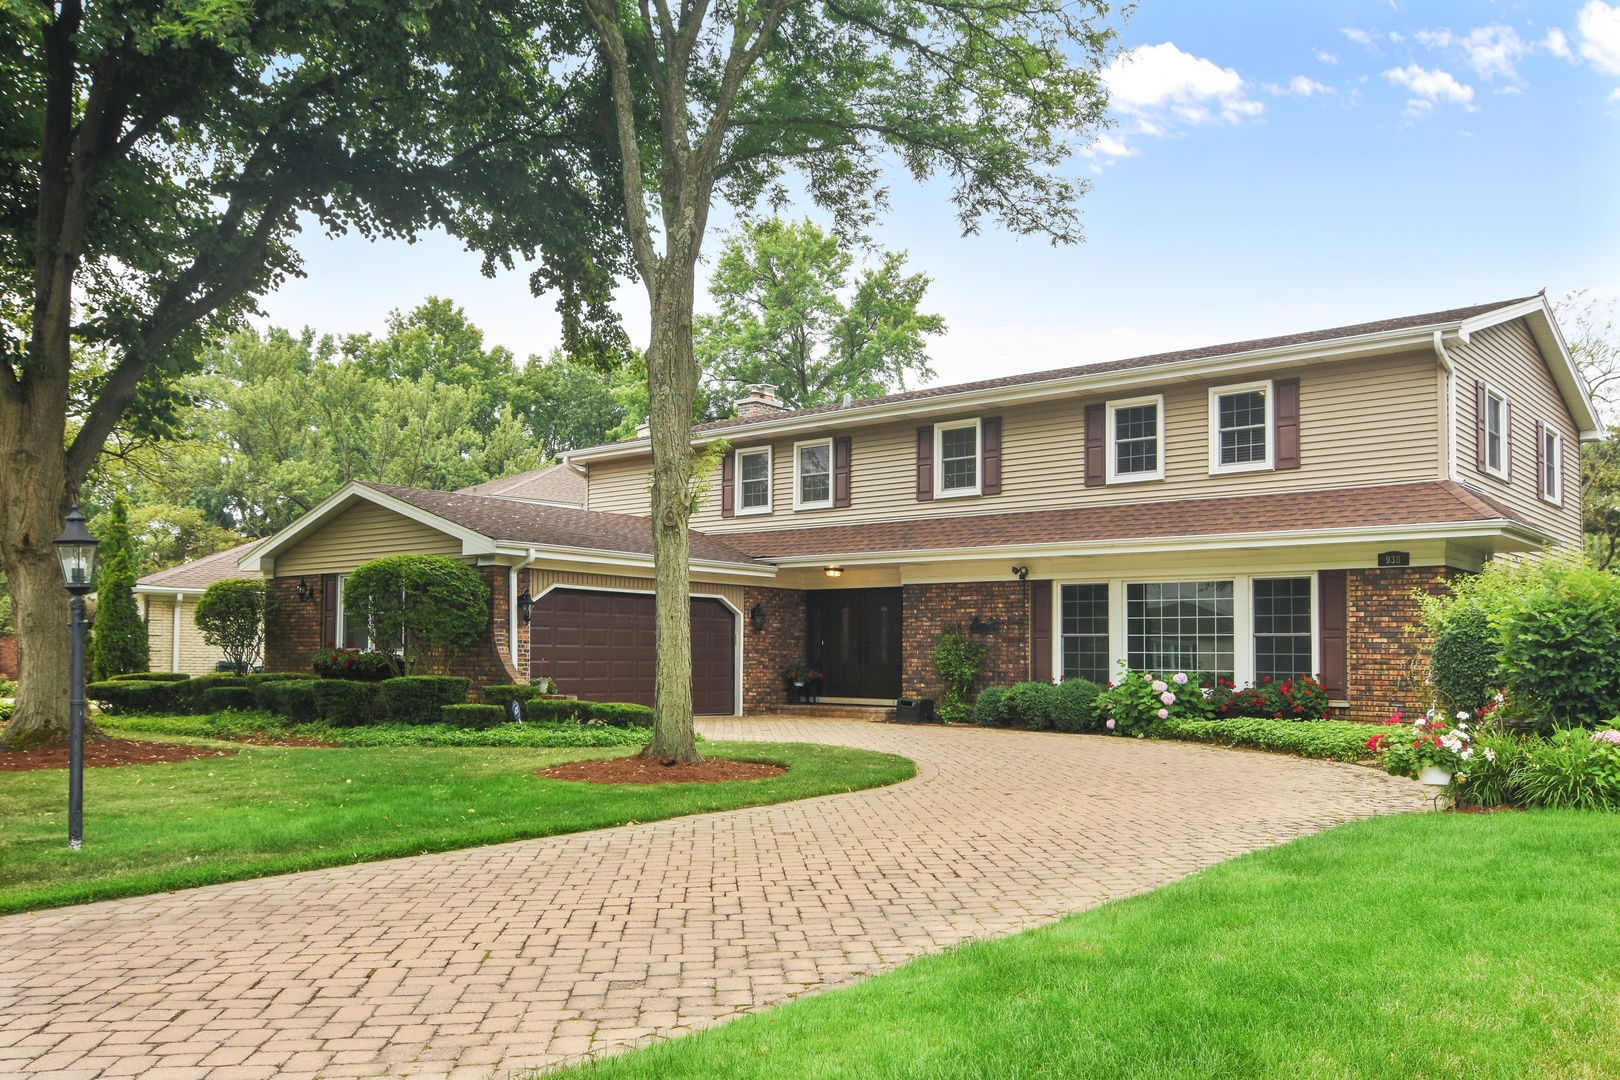 938 Suffield Terrace, Northbrook in Cook County, IL 60062 Home for Sale